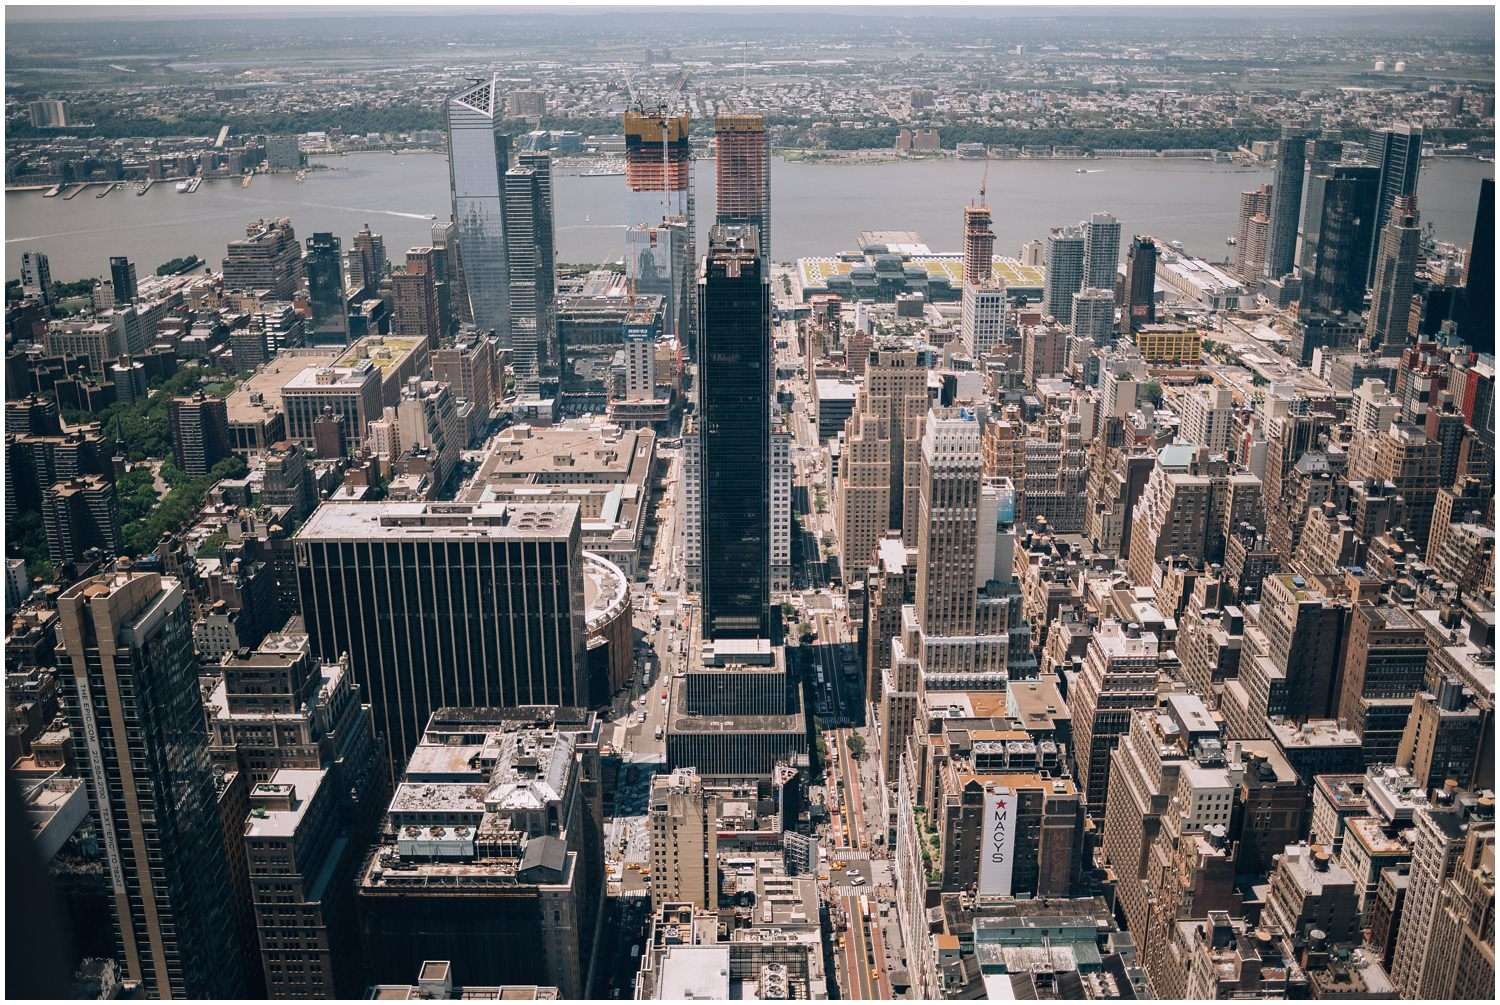 travel, new york, new york city, brooklyn, photographer, photography, 282 burger, Threes brewing, Brooklyn Bridge, The oculus, Twin tower reflection pools, New world Trade Center, Battery Park, Wall St., Chinatown, ferrara's bakery, Little Italy, Washington Square, Chelsea market, The High Line, Coney Island, MCU Park, the cyclone, brooklyn cyclones, Empire State Building, Flatiron Building, 5th Ave, times square, Rockefeller center, radio city, Central Park